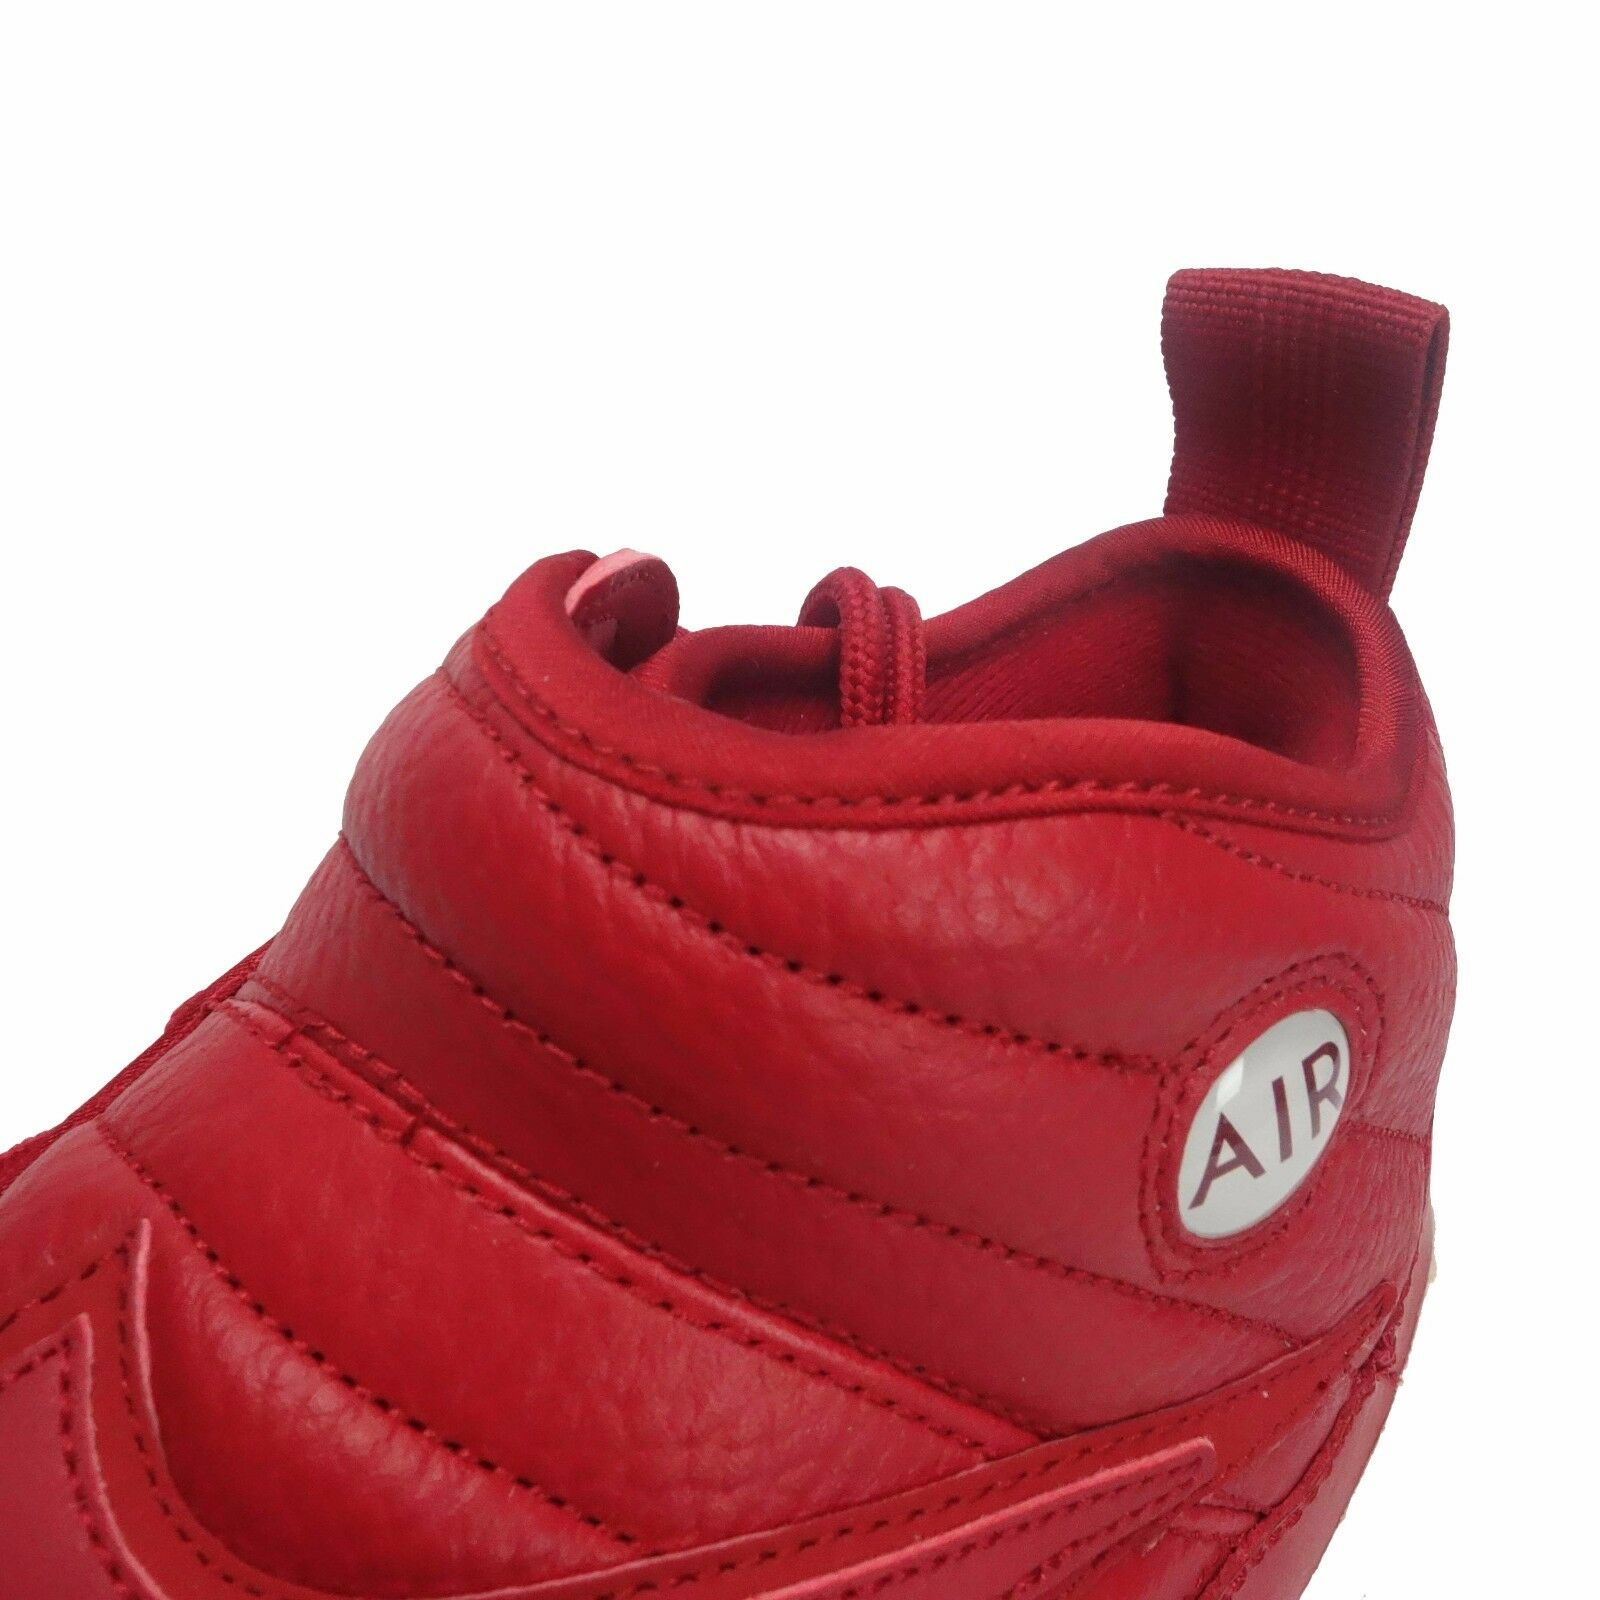 Nike Air Shake homme Ndestrukt homme Shake chaussures Gym rouge/blanc b489ce